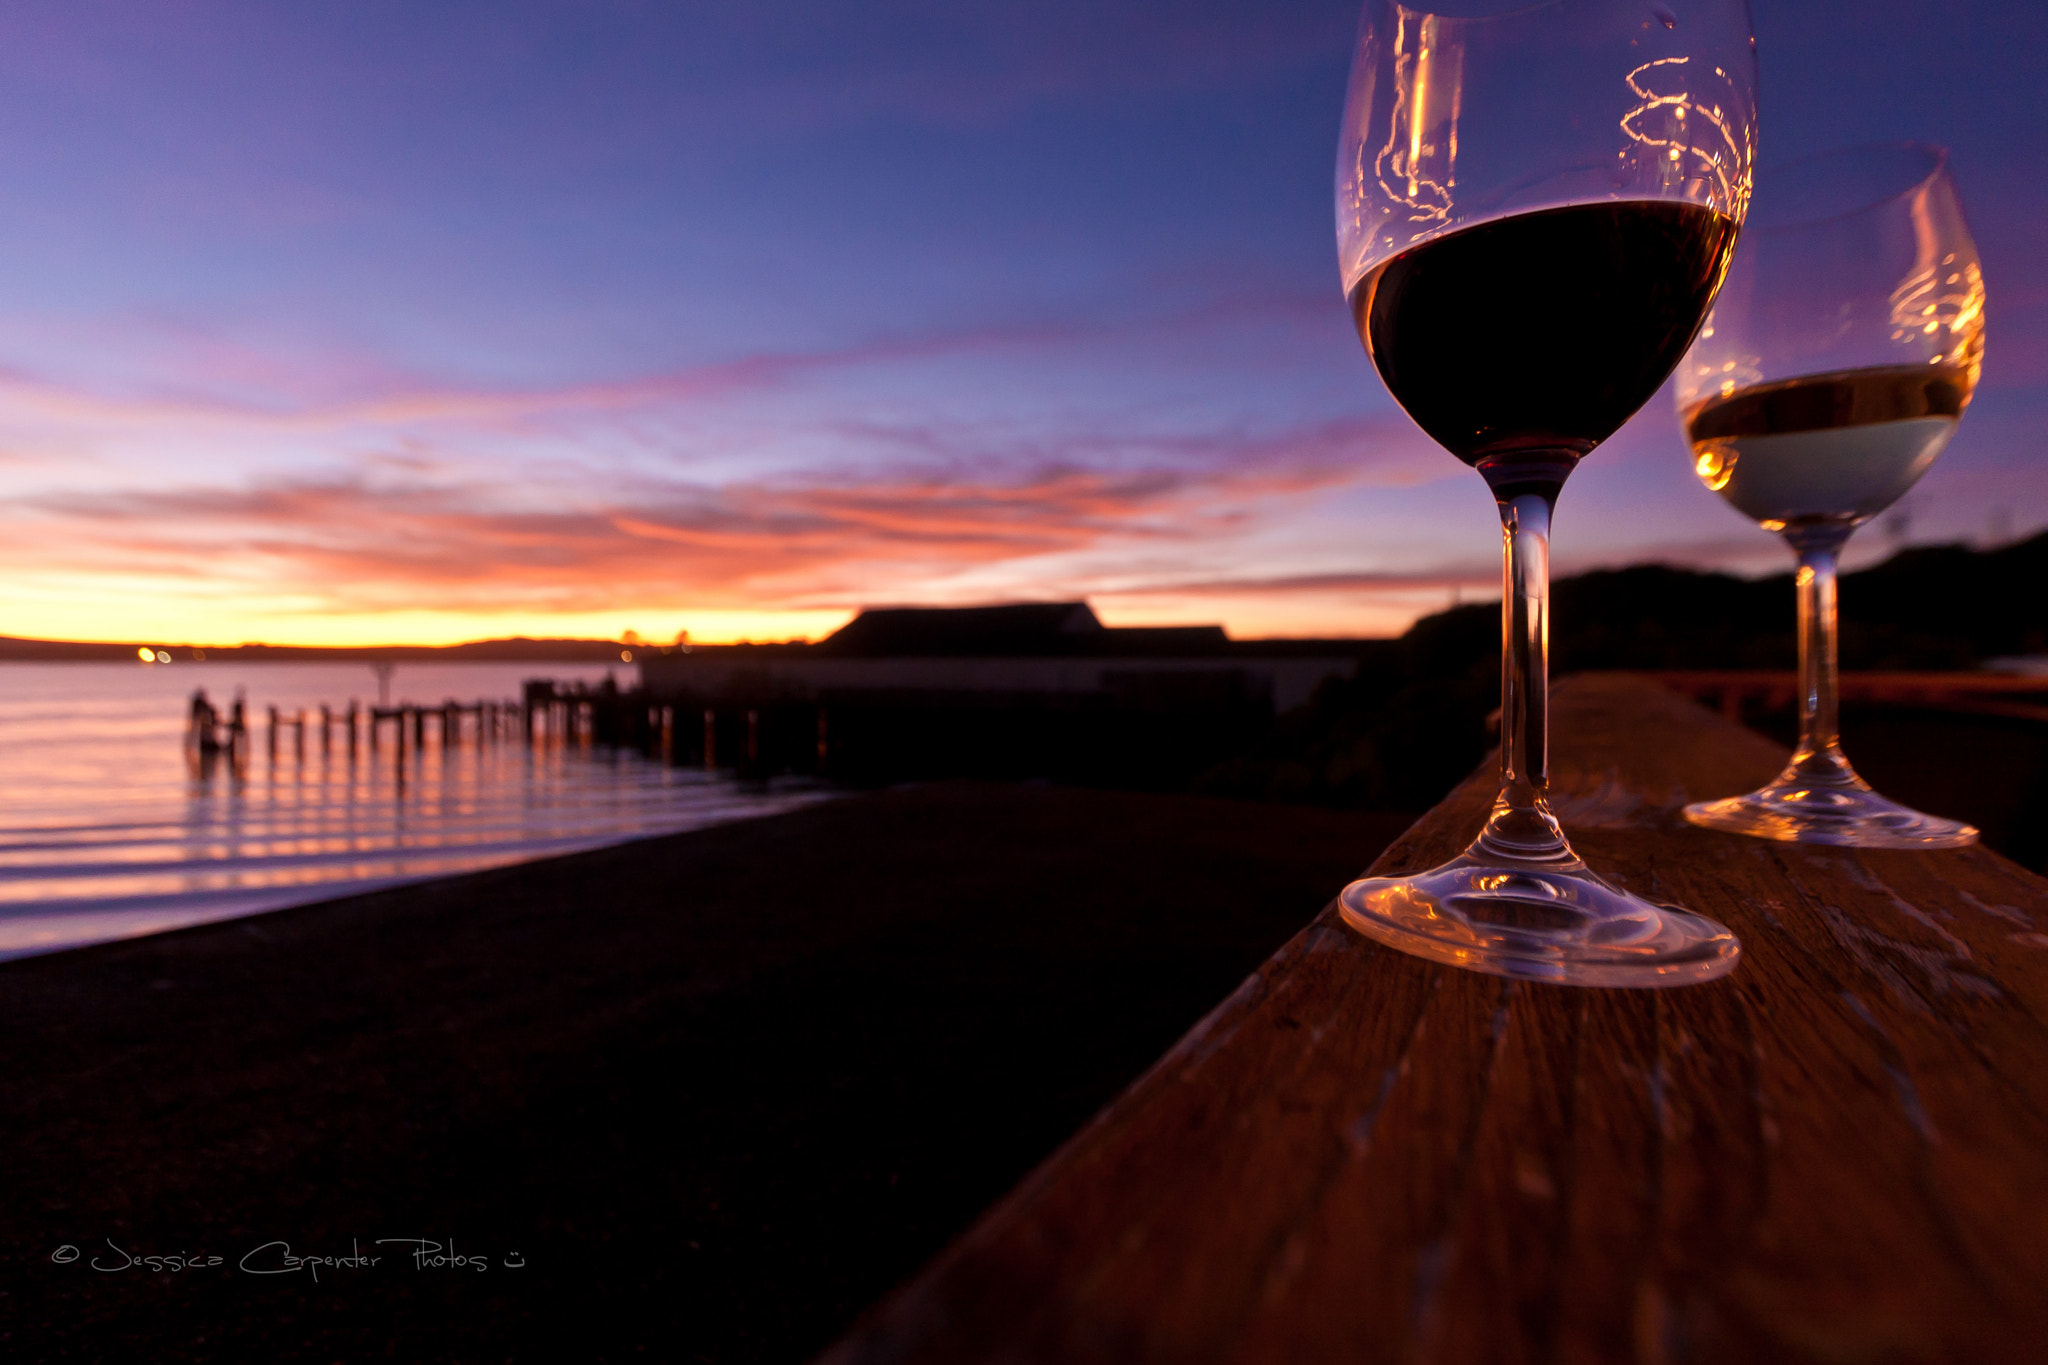 Photograph Sipsy Tipsy Sunset by Jessica Carpenter on 500px